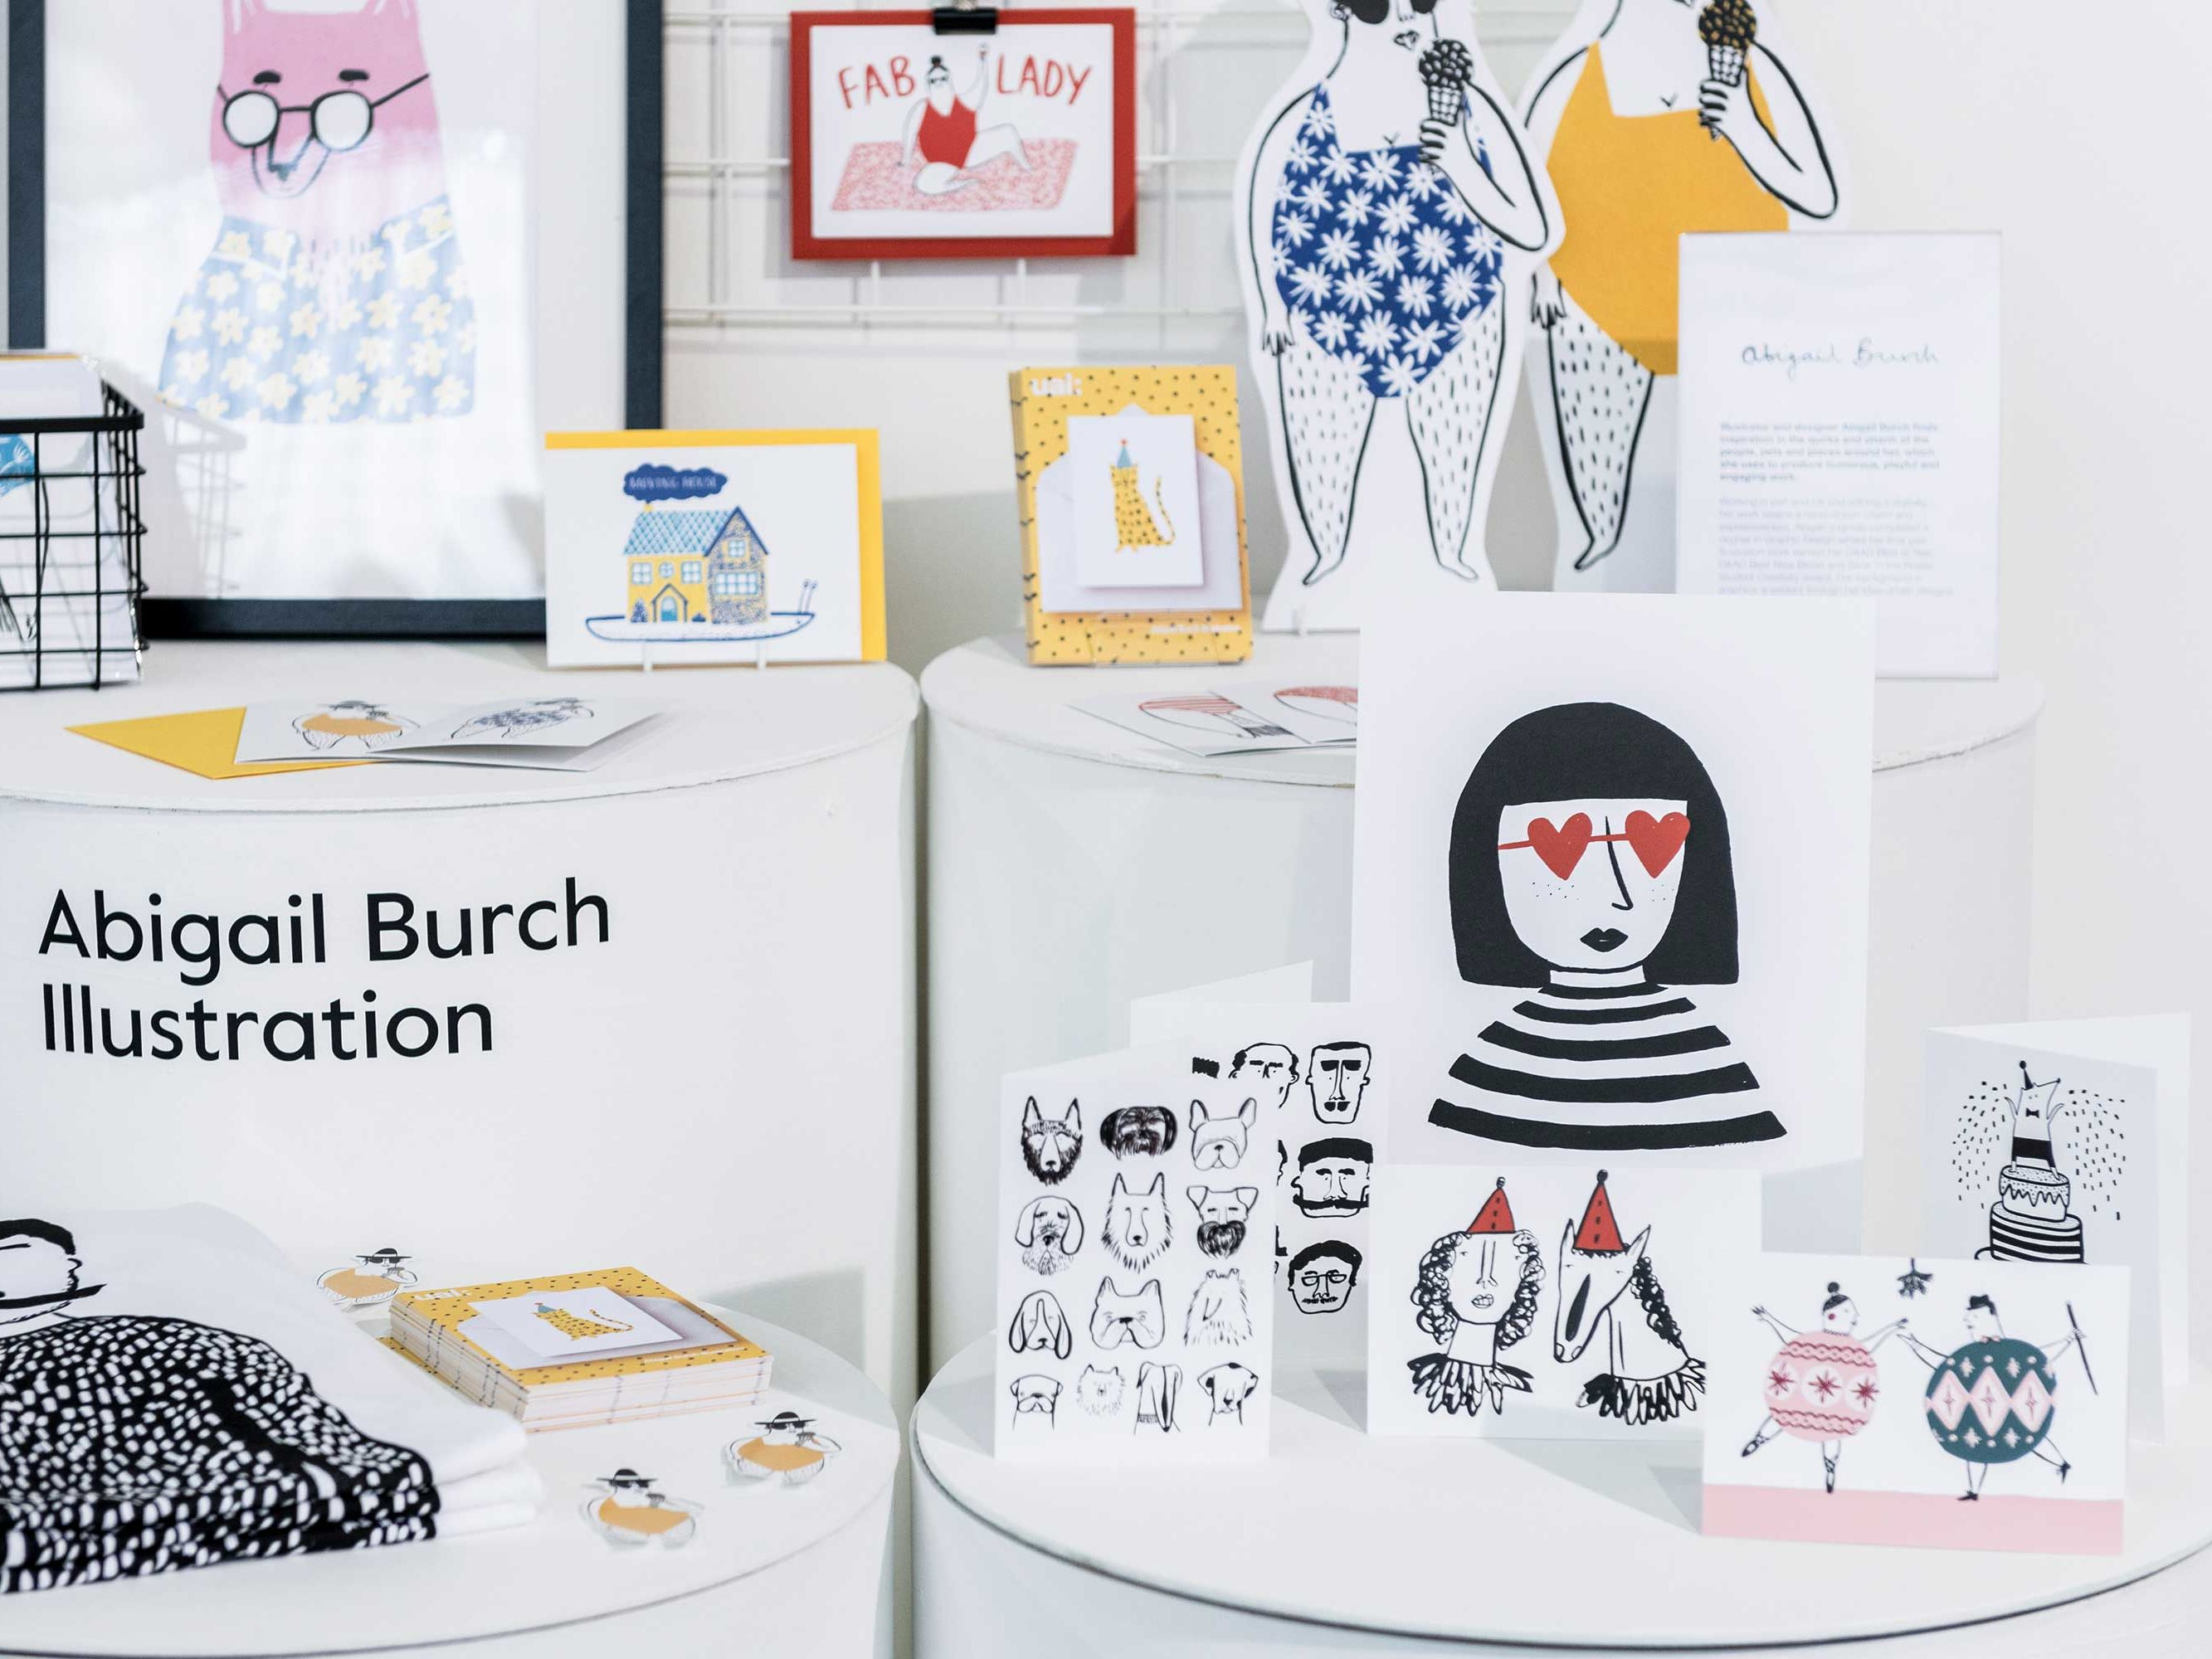 Trade show stand of illustrator Abigail Burch